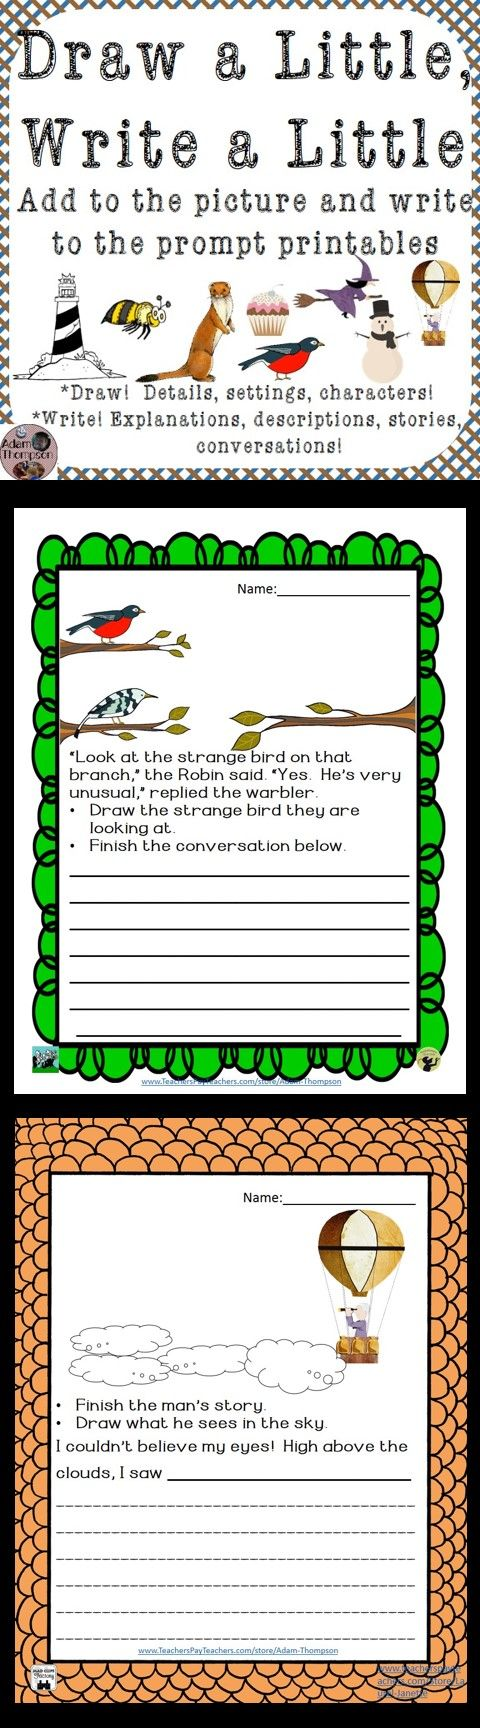 These printable writing prompts include an incomplete picture for students to finish with drawing and coloring. The writing prompt, (which could be narrative, explanatory, or descriptive) is connected to the choices the student makes in their drawing, so it is a nice, quick, no-prep printable that provides an opportunity for creativity in drawing AND writing.